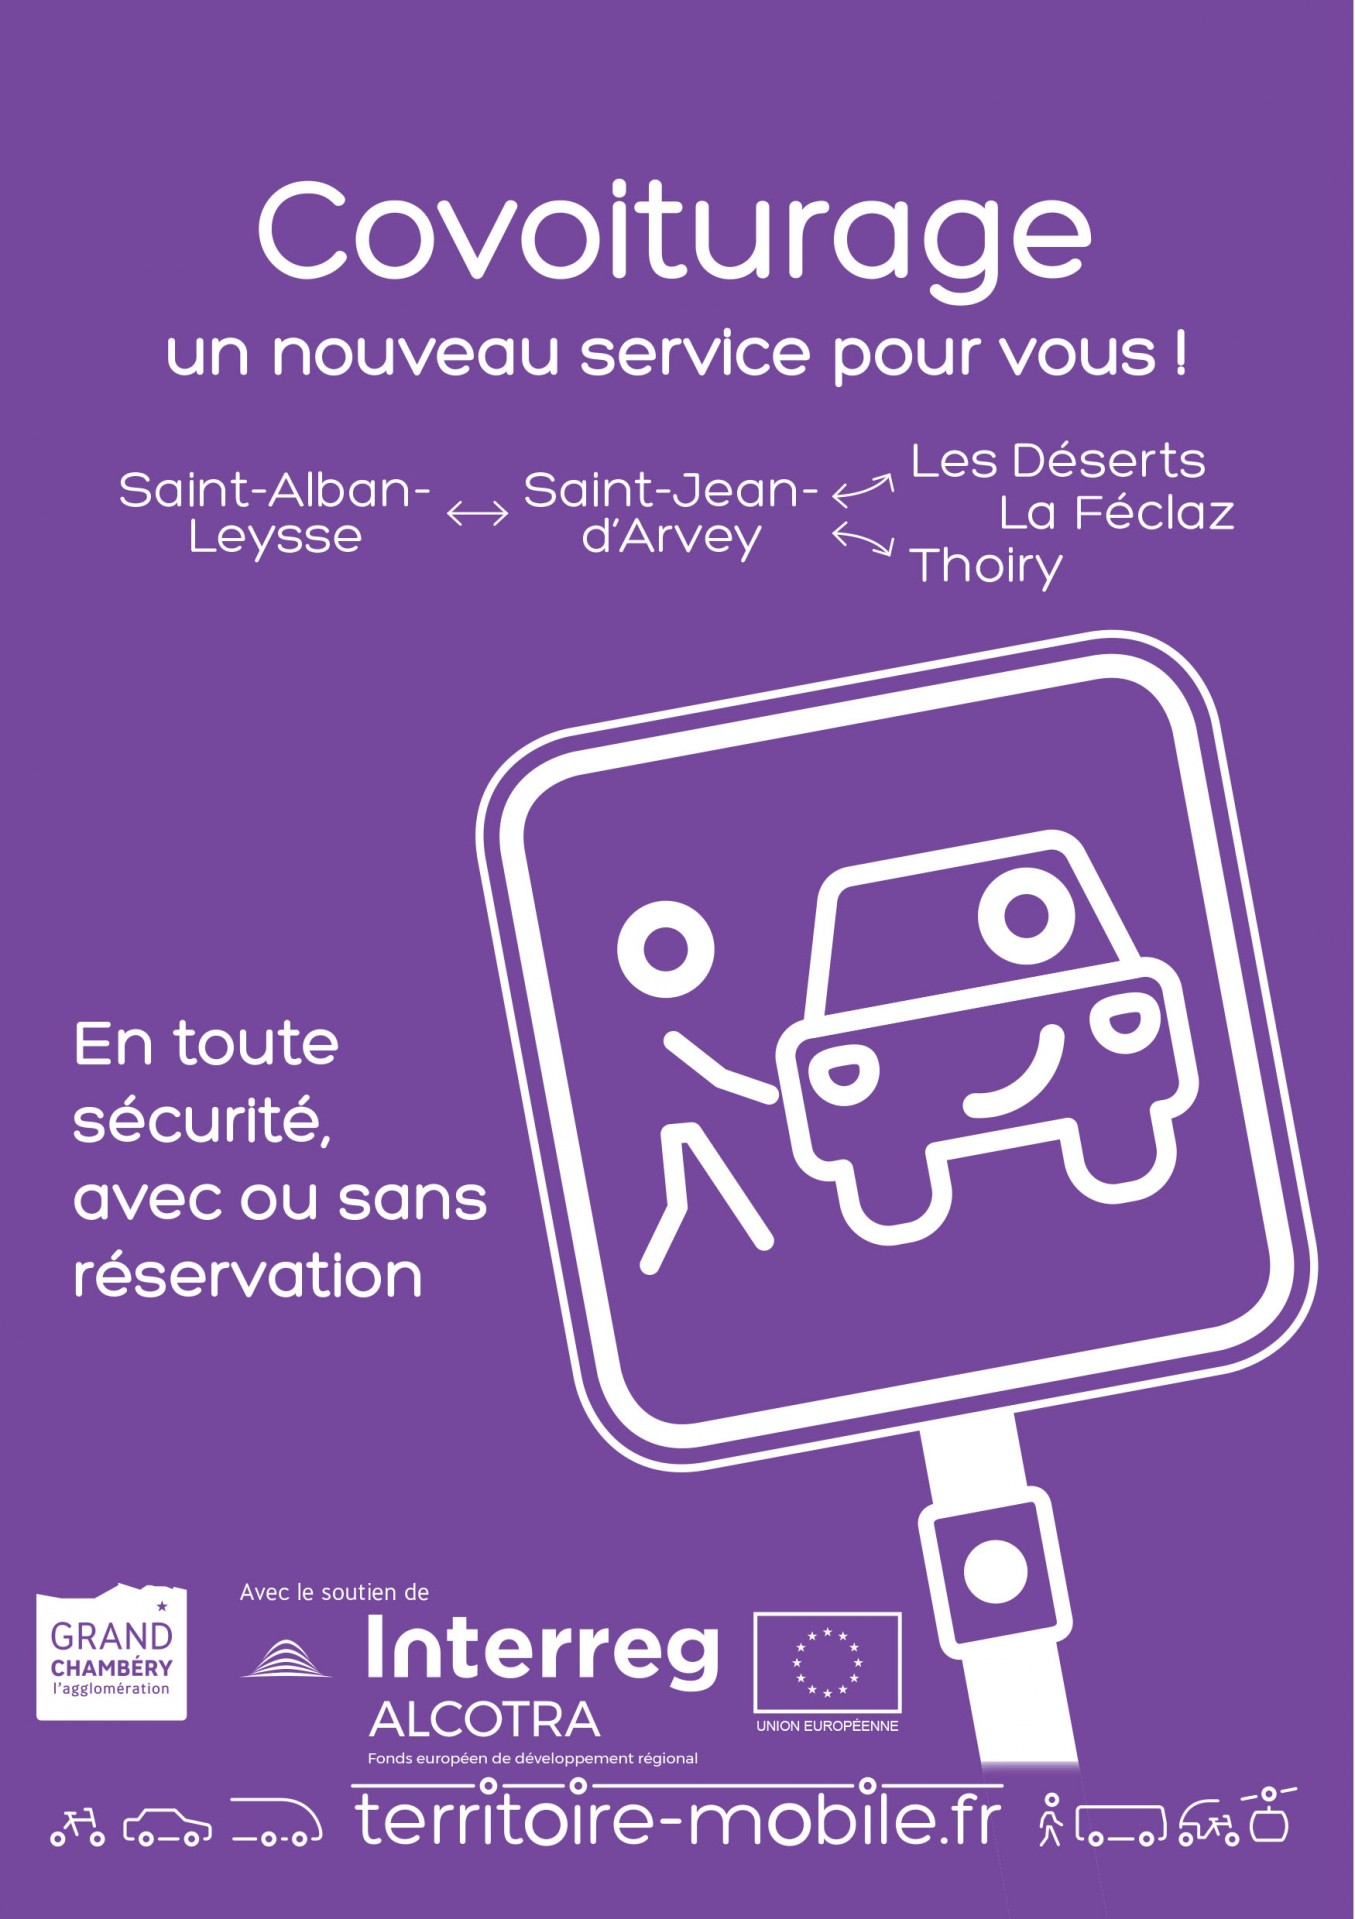 flyer-covoiturage-gd-chambery-1-335